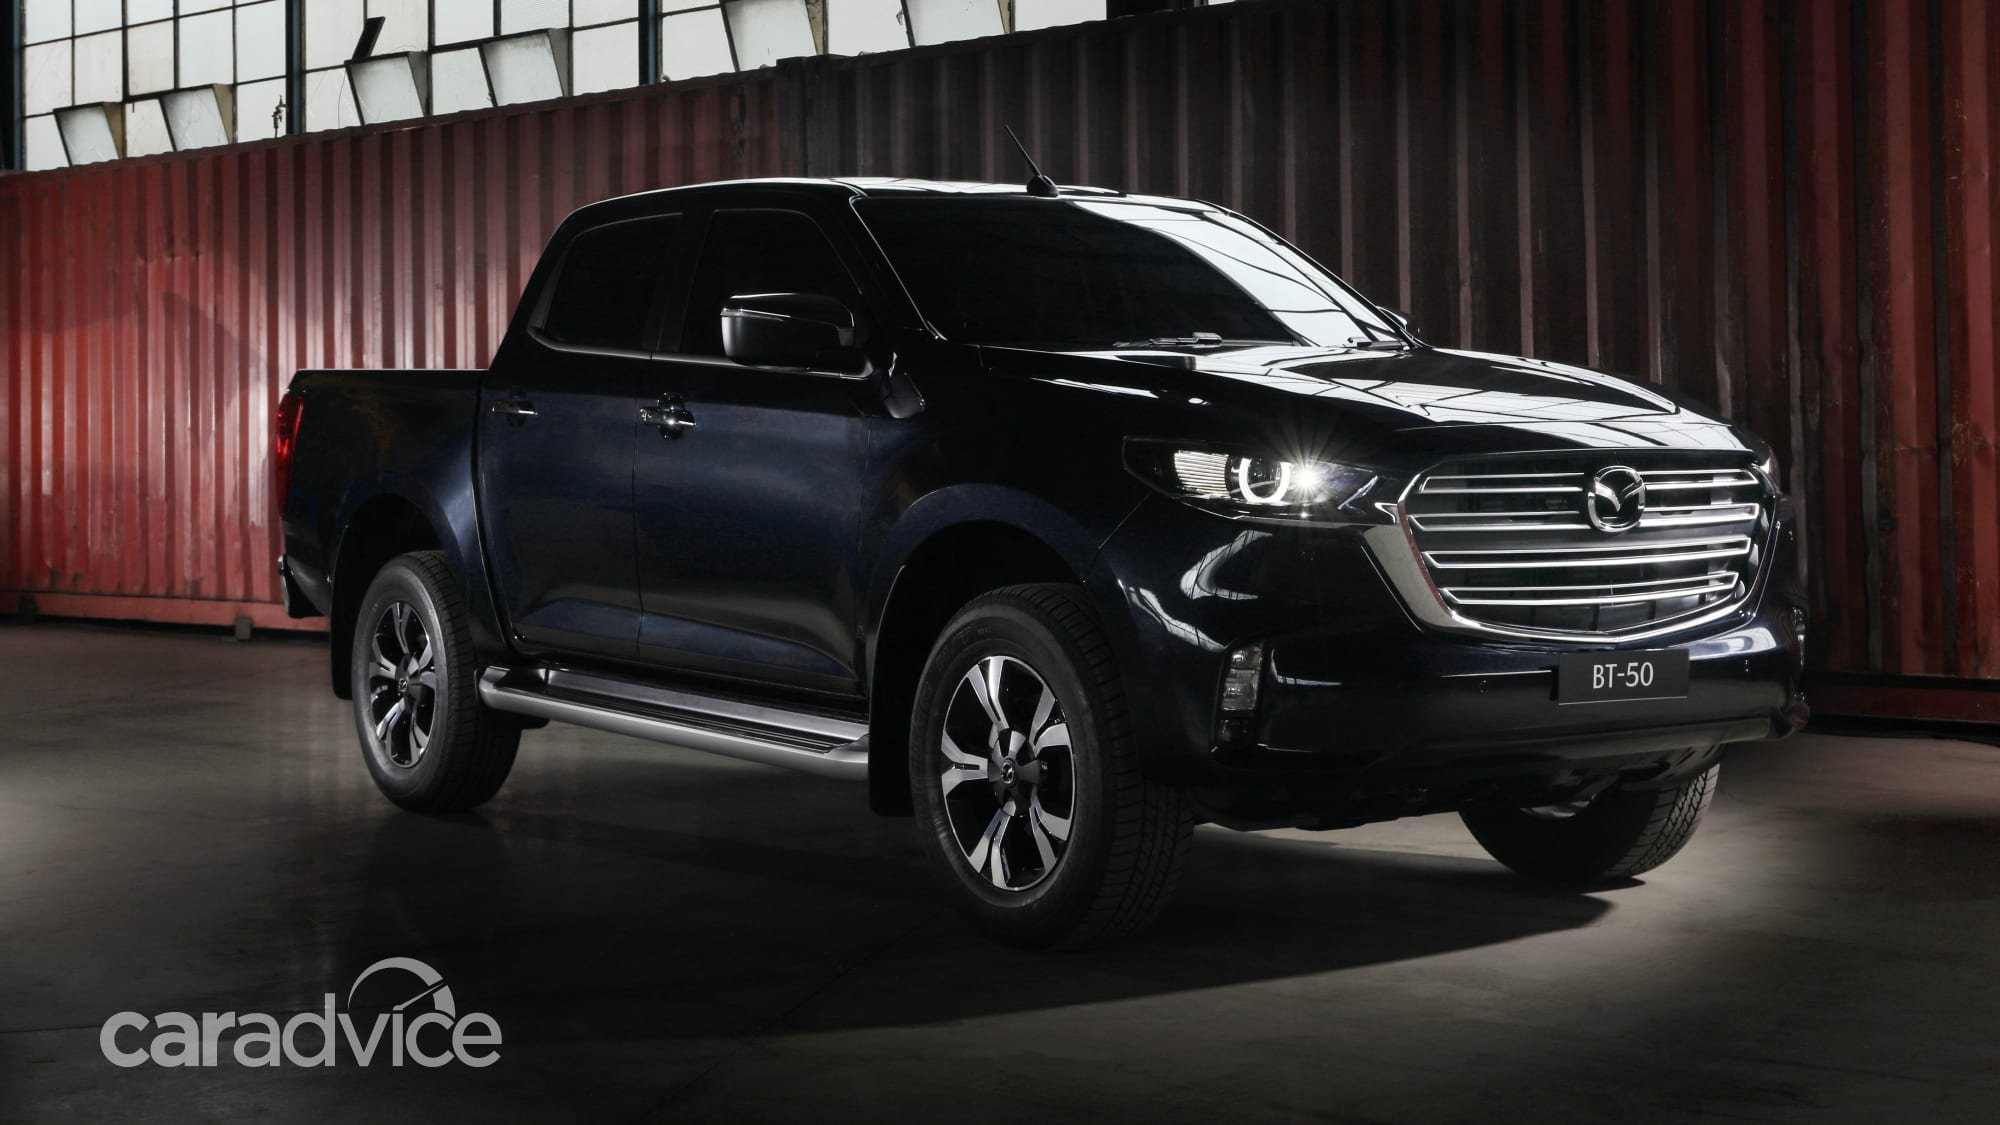 2021 mazda bt50 unveiled in showrooms this year  caradvice